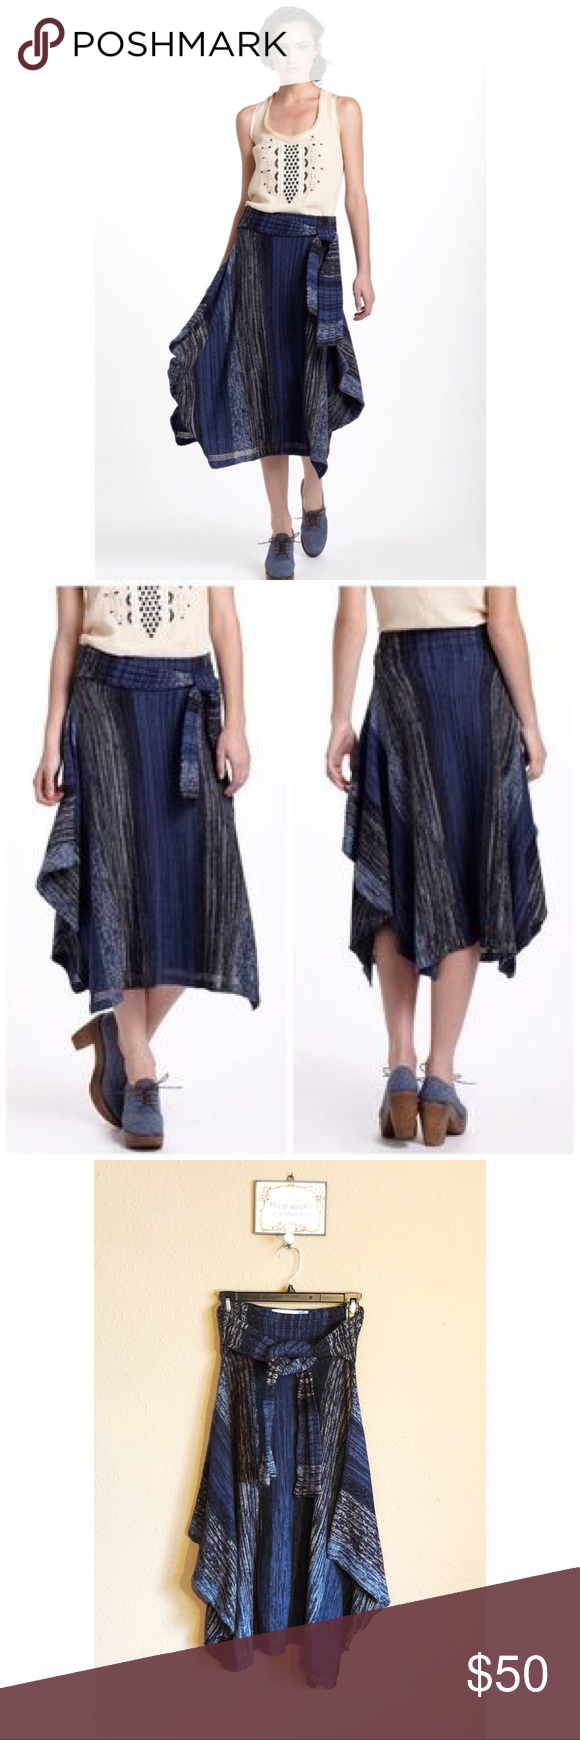 Women's Clothing New With Tag Anthropologie Skirt